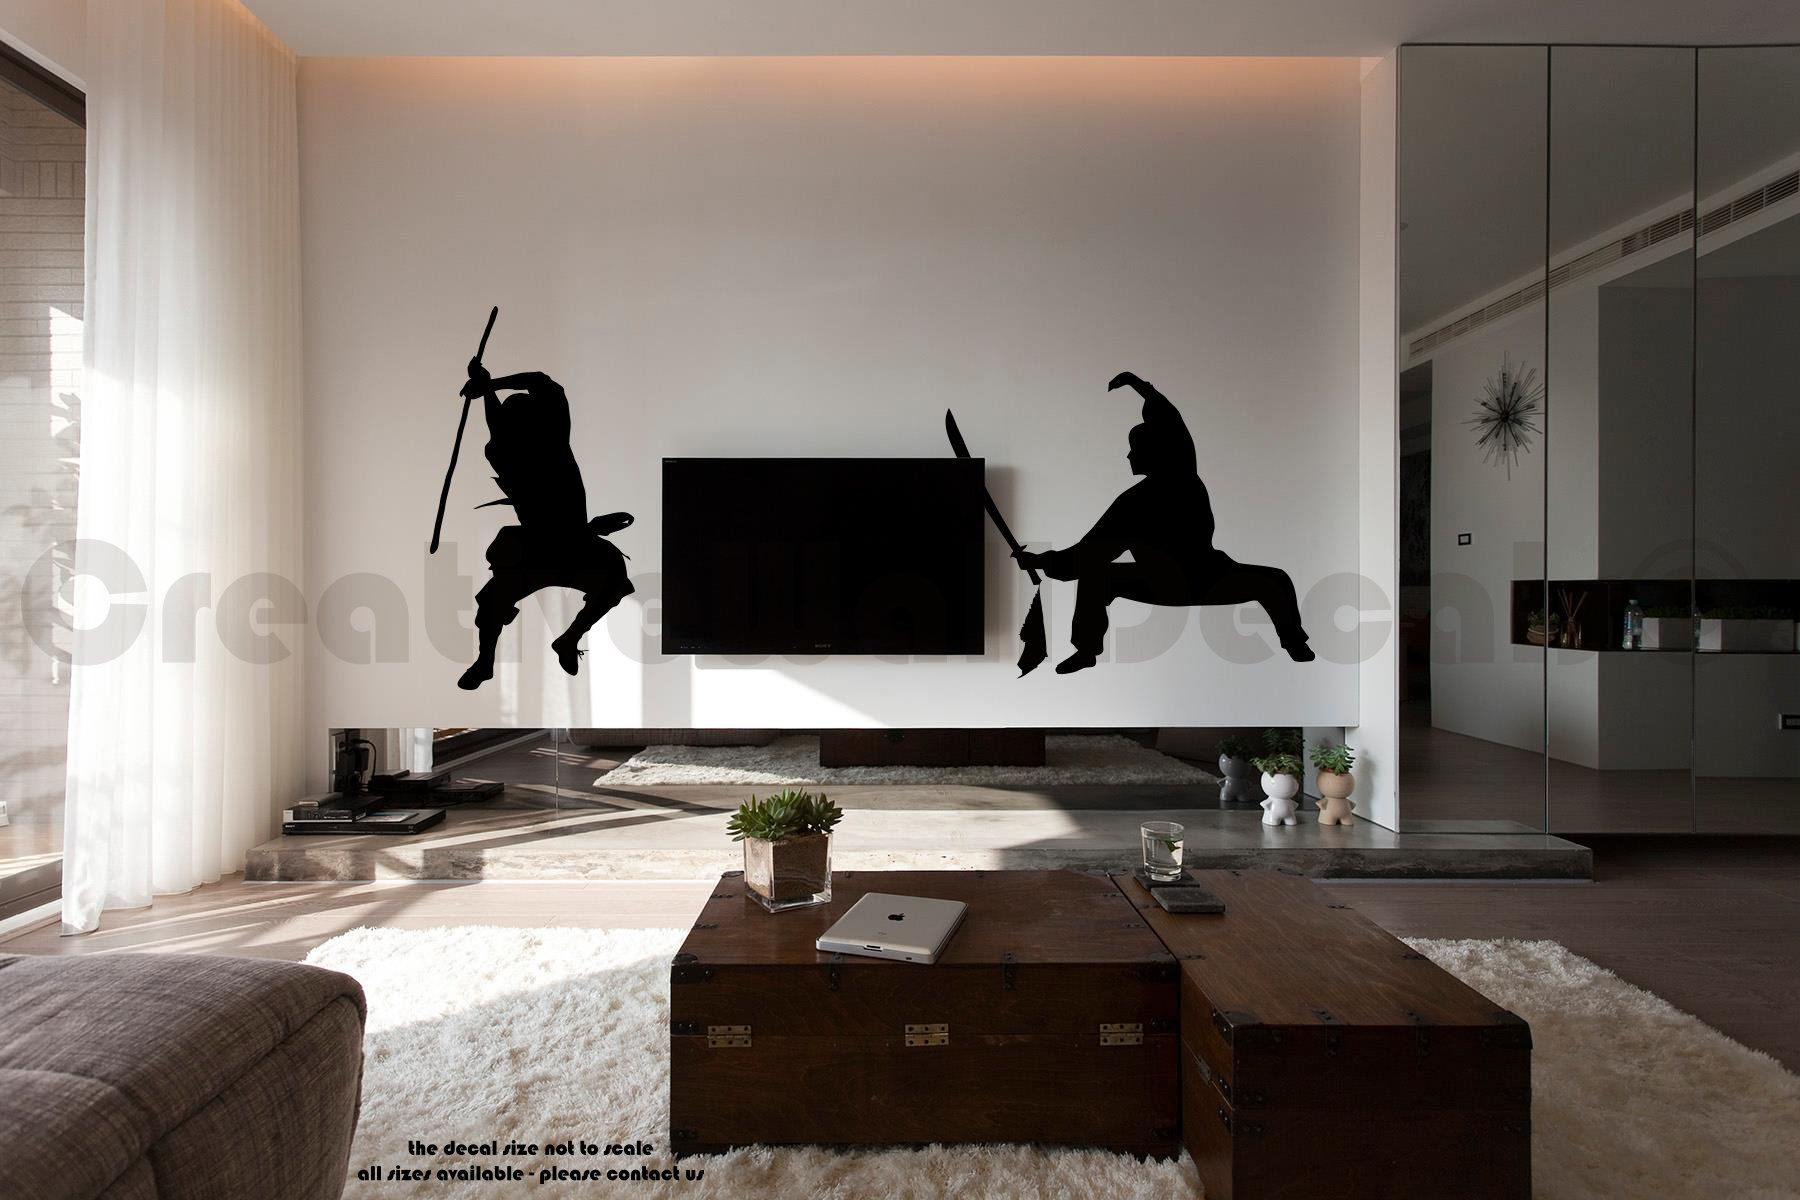 Vinyl Wall Decal Sticker Samurai Muai Thai Weapoon Kung Fu Bedroom Kids R1756 by CreativeWallDecals